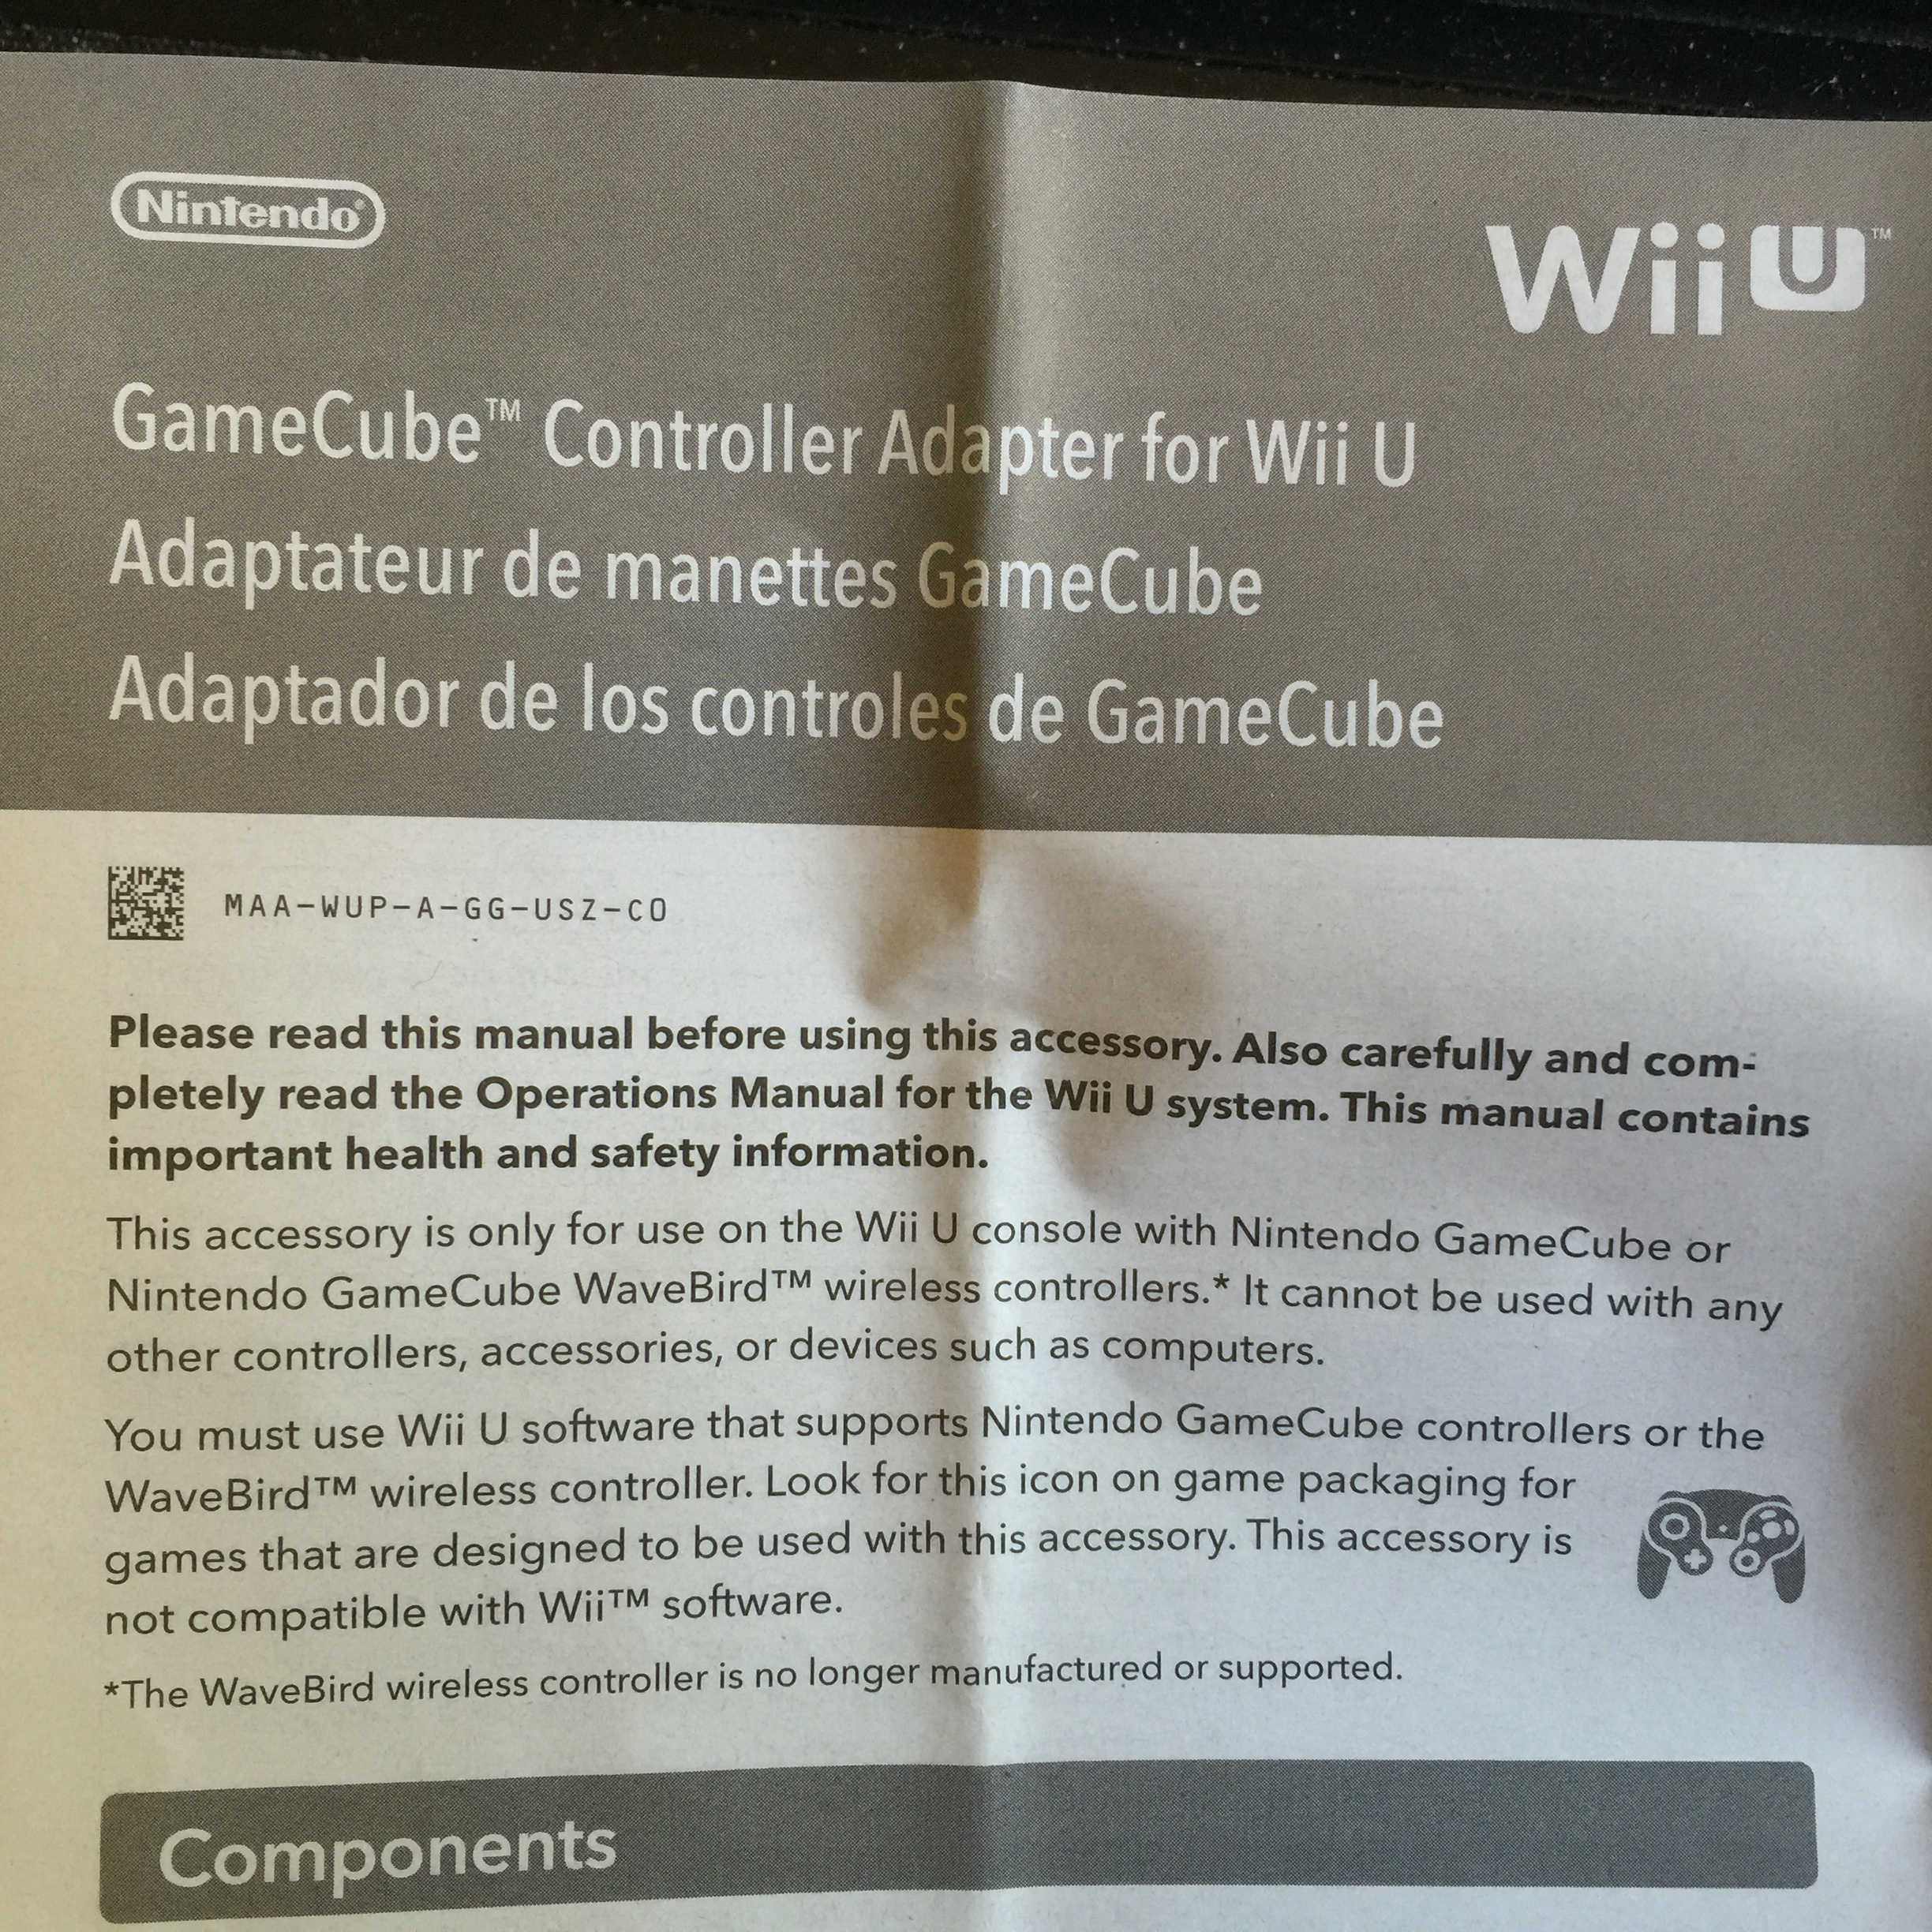 Confirmed The Wii U Gamecube Controller Adapter Will Not